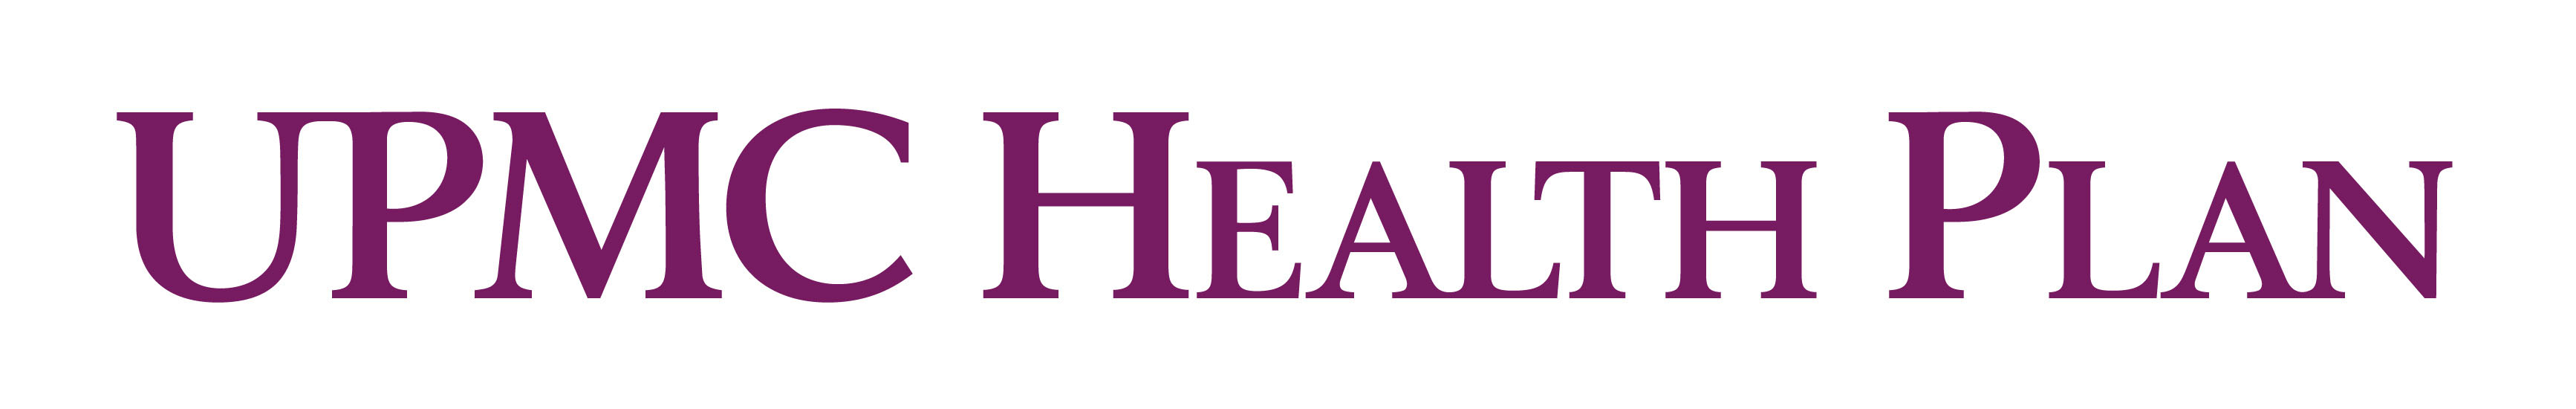 UPMC Health Plan Logo 2016